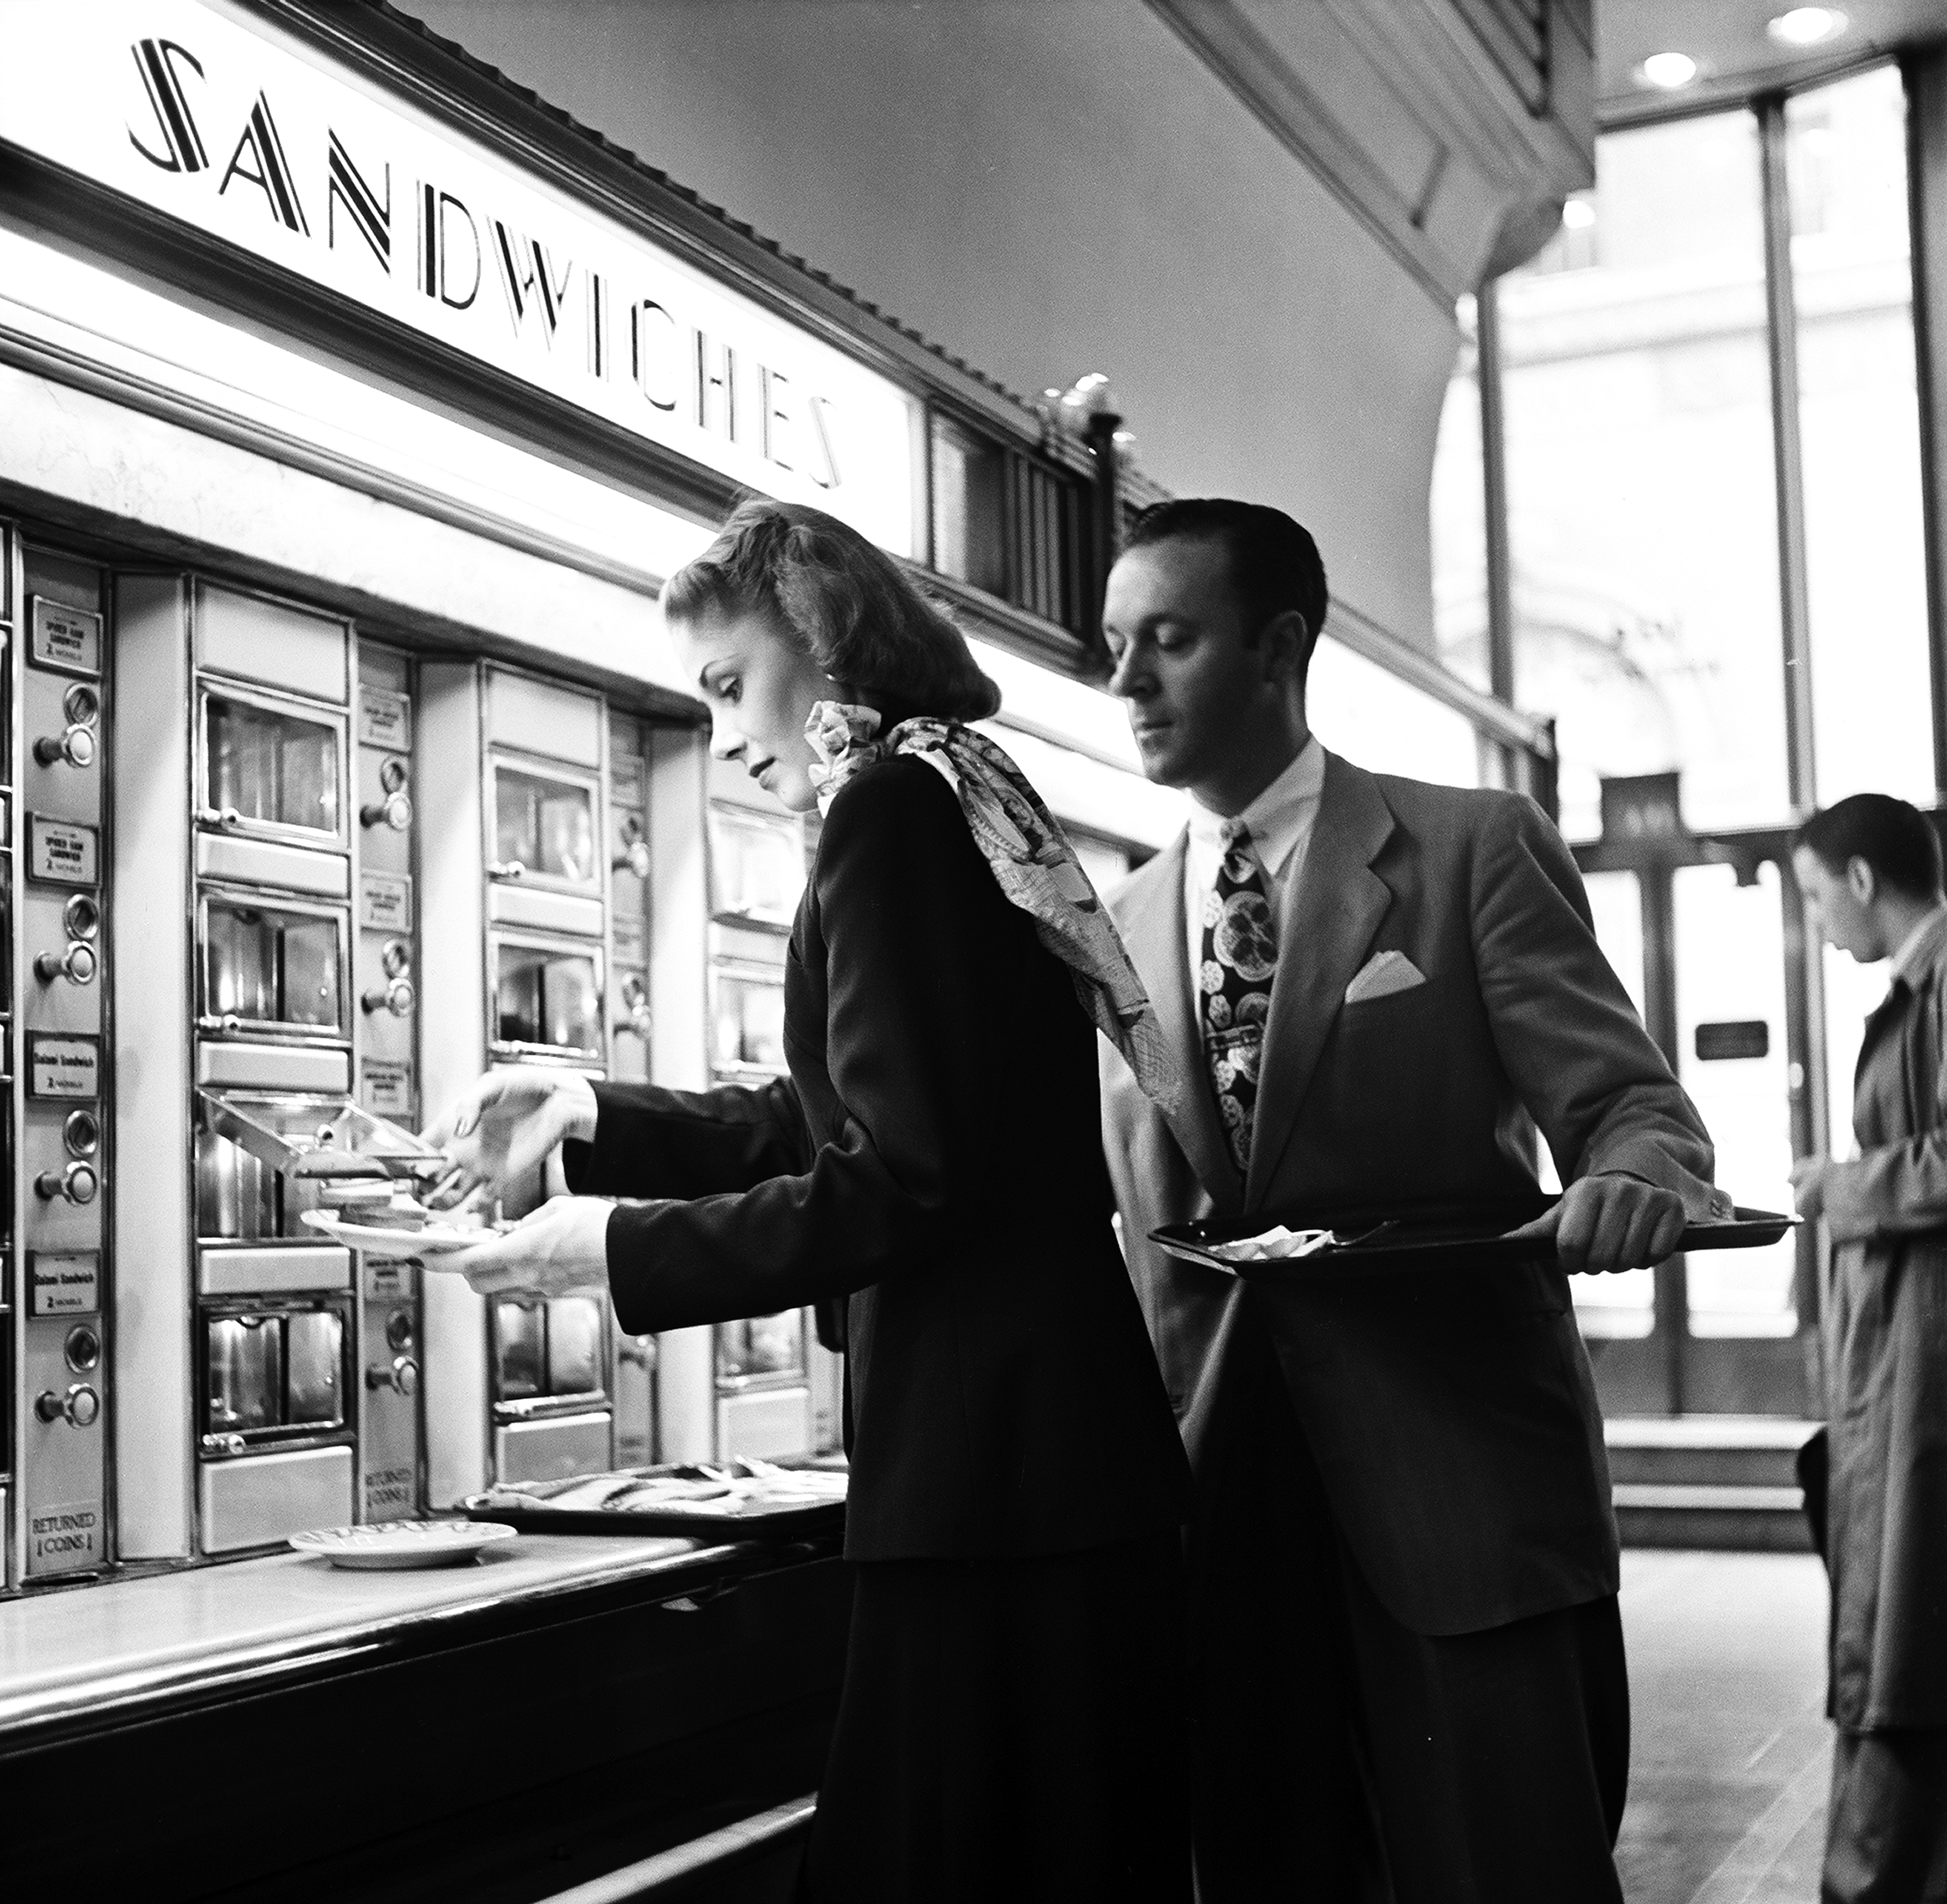 View of a well-dressed man and woman deciding on sandwiches at Grand Central Station automat in New York, 1948.